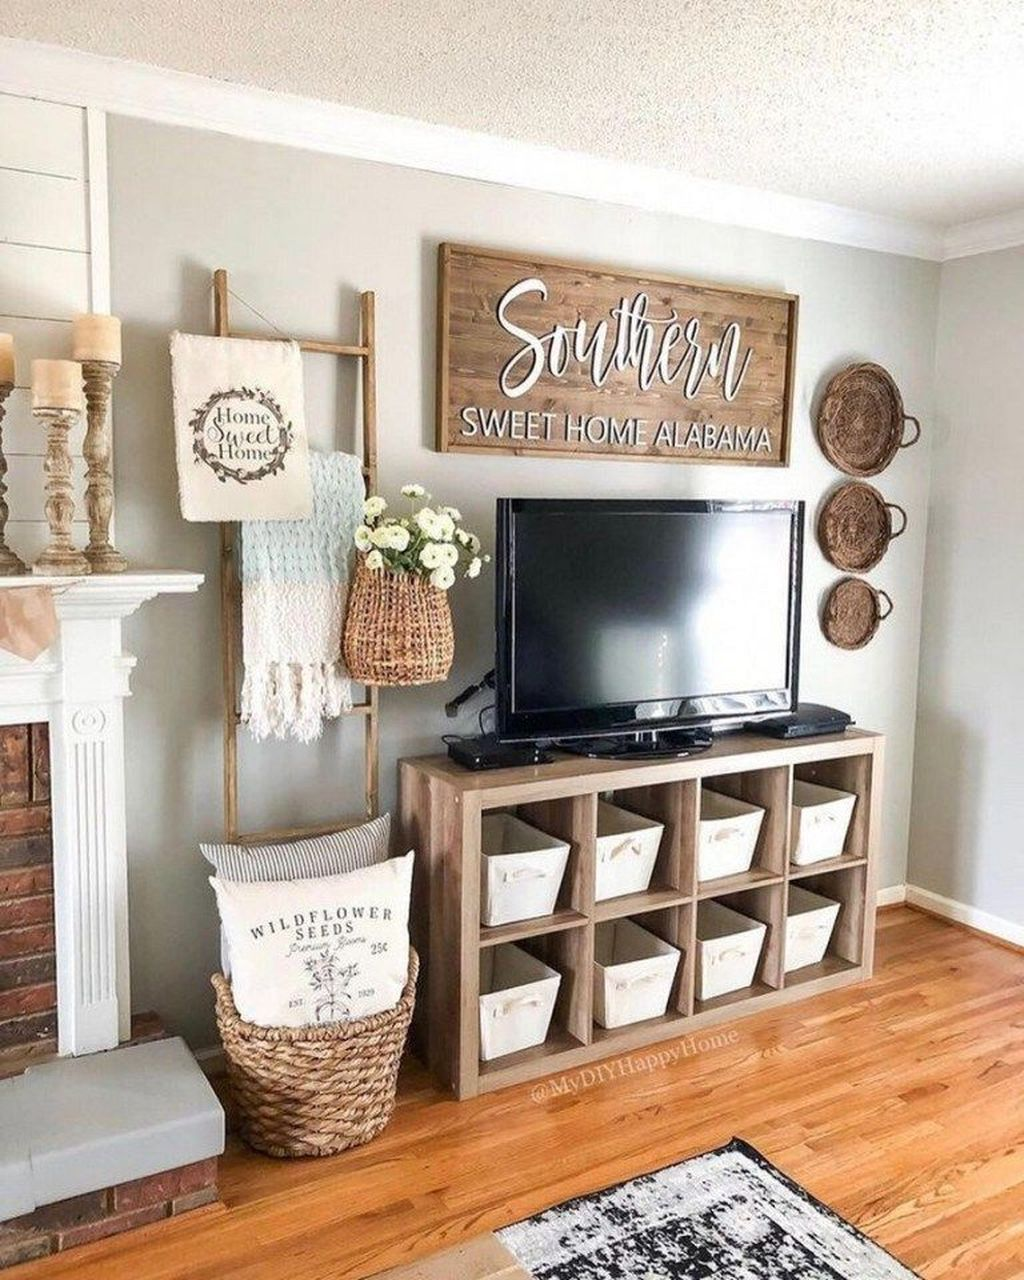 Admirable Farmhouse Living Room Decor Ideas 03